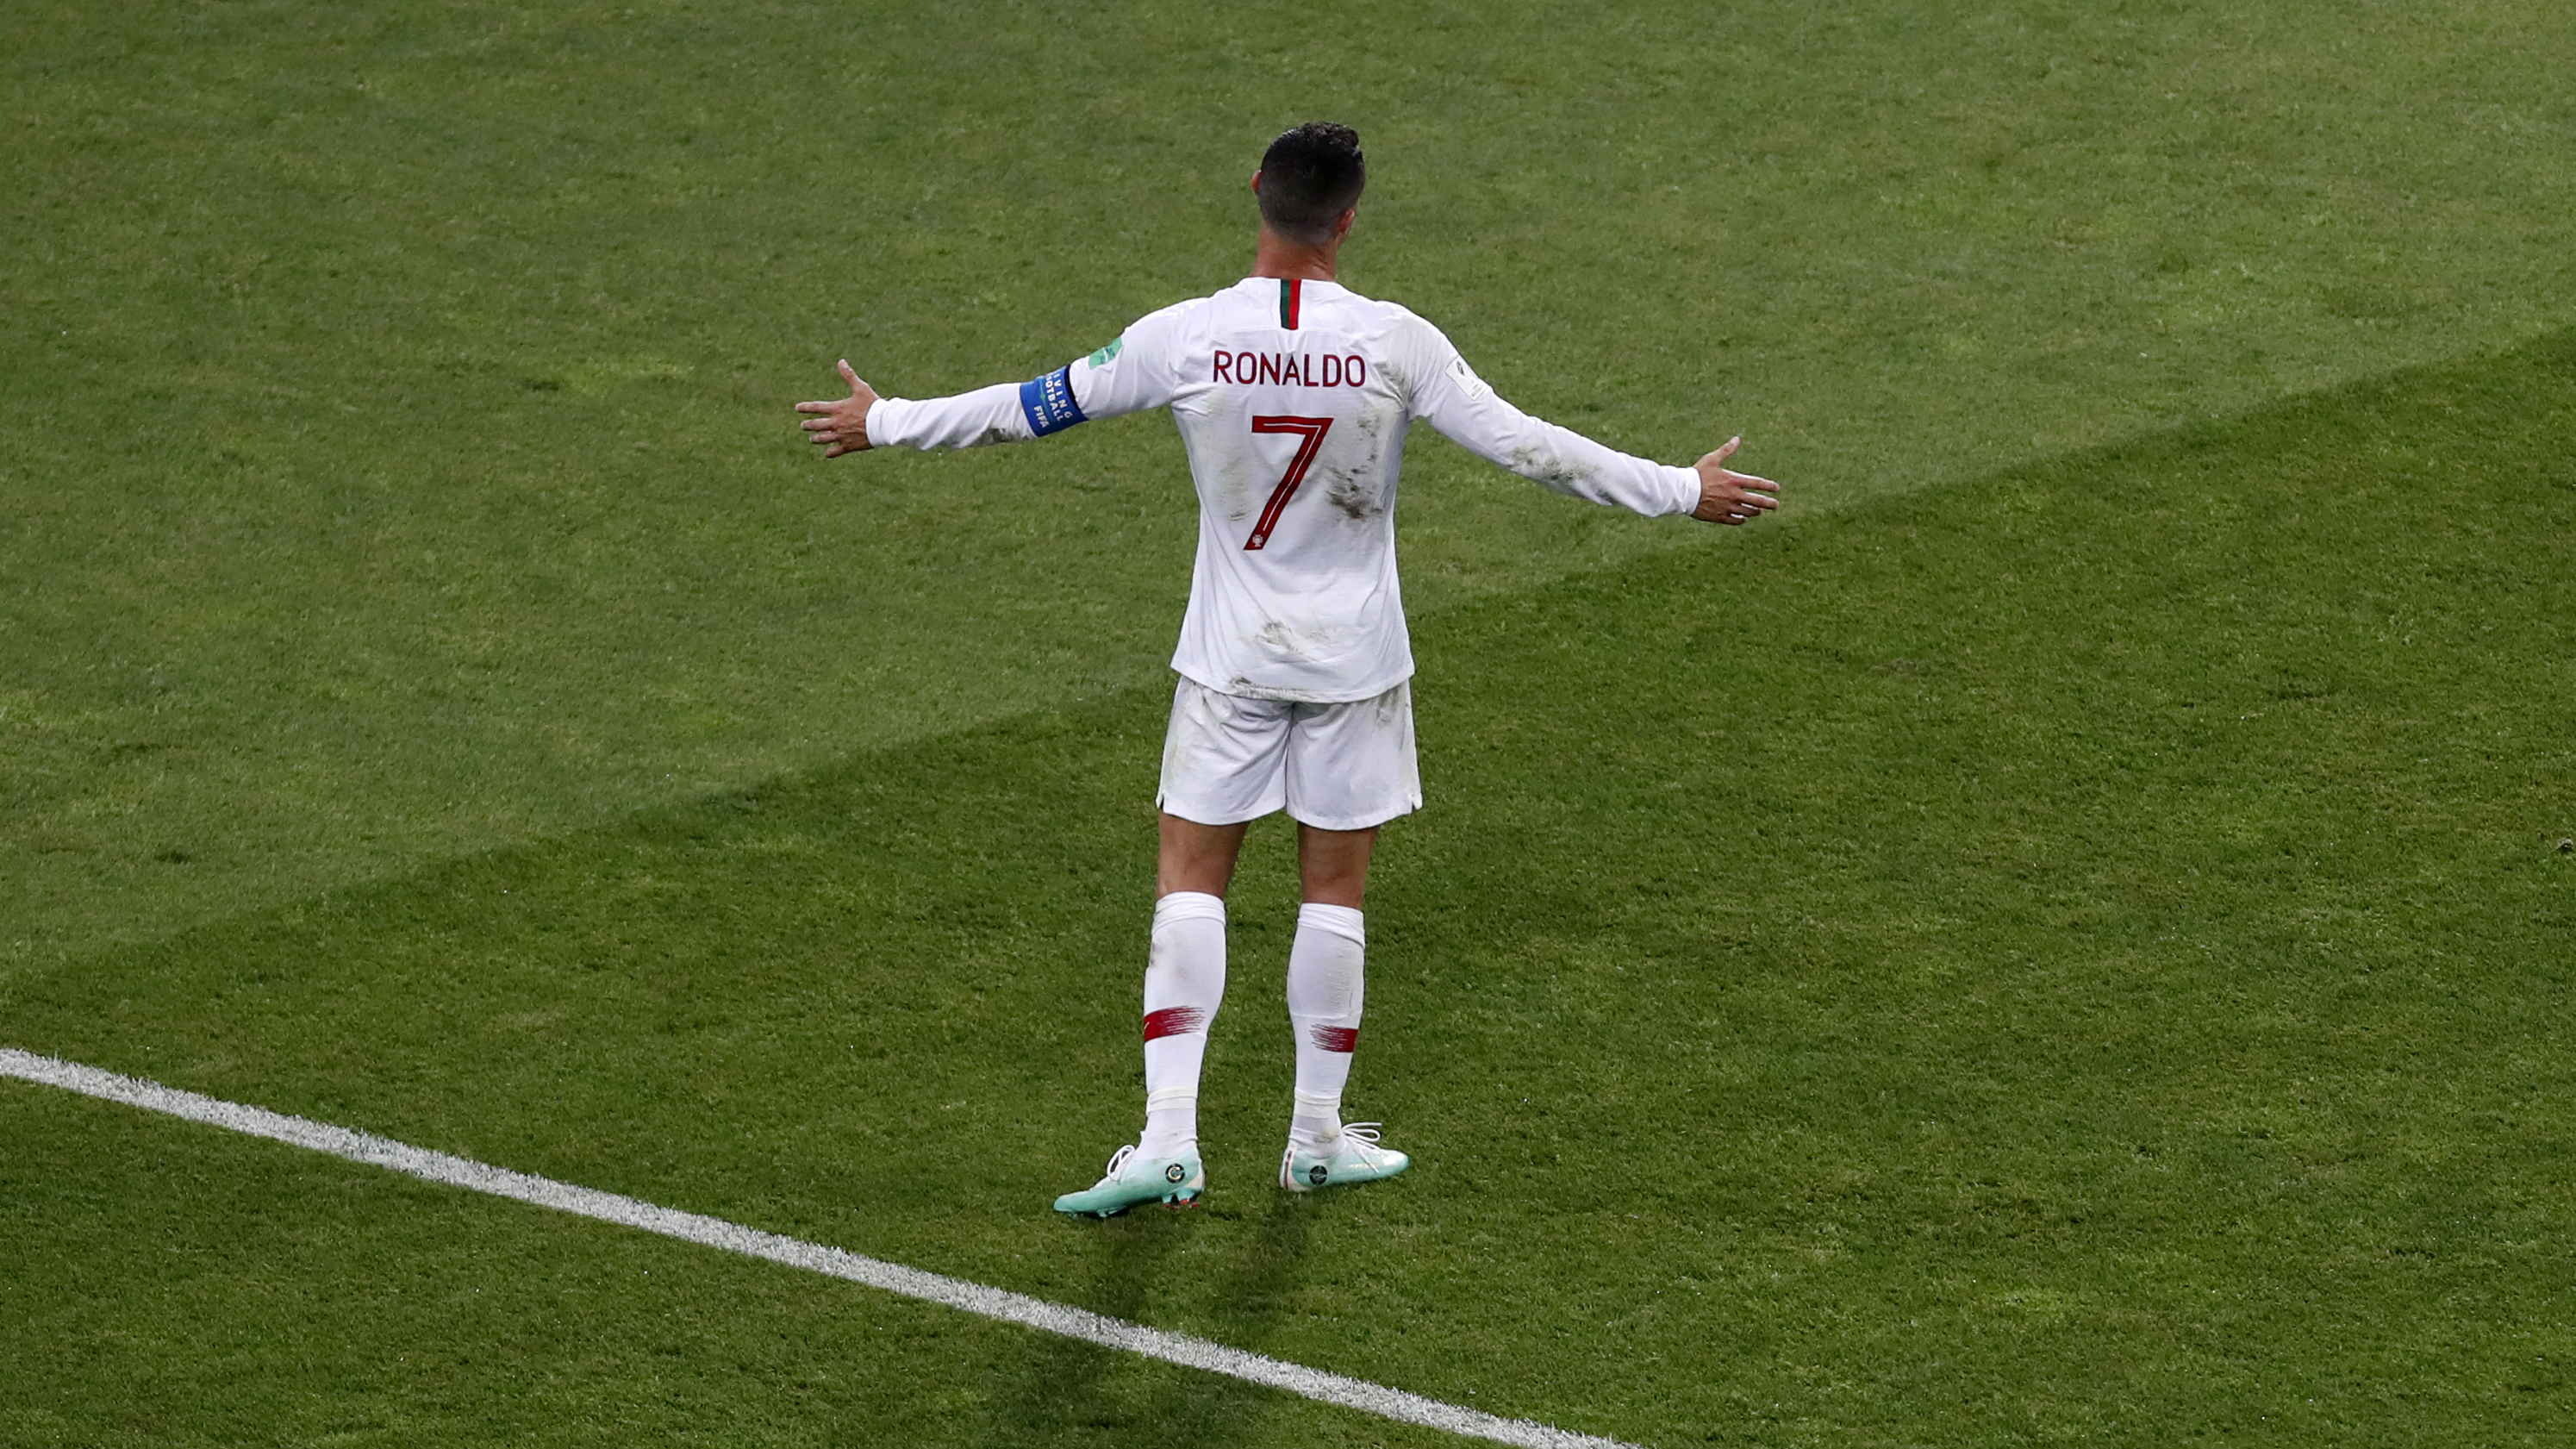 Portugal's Cristiano Ronaldo spreads his arms during the round of 16 match between Uruguay and Portugal at the 2018 soccer World Cup at the Fisht Stadium in Sochi, Russia, Saturday, June 30, 2018. (AP Photo/Darko Vojinovic)